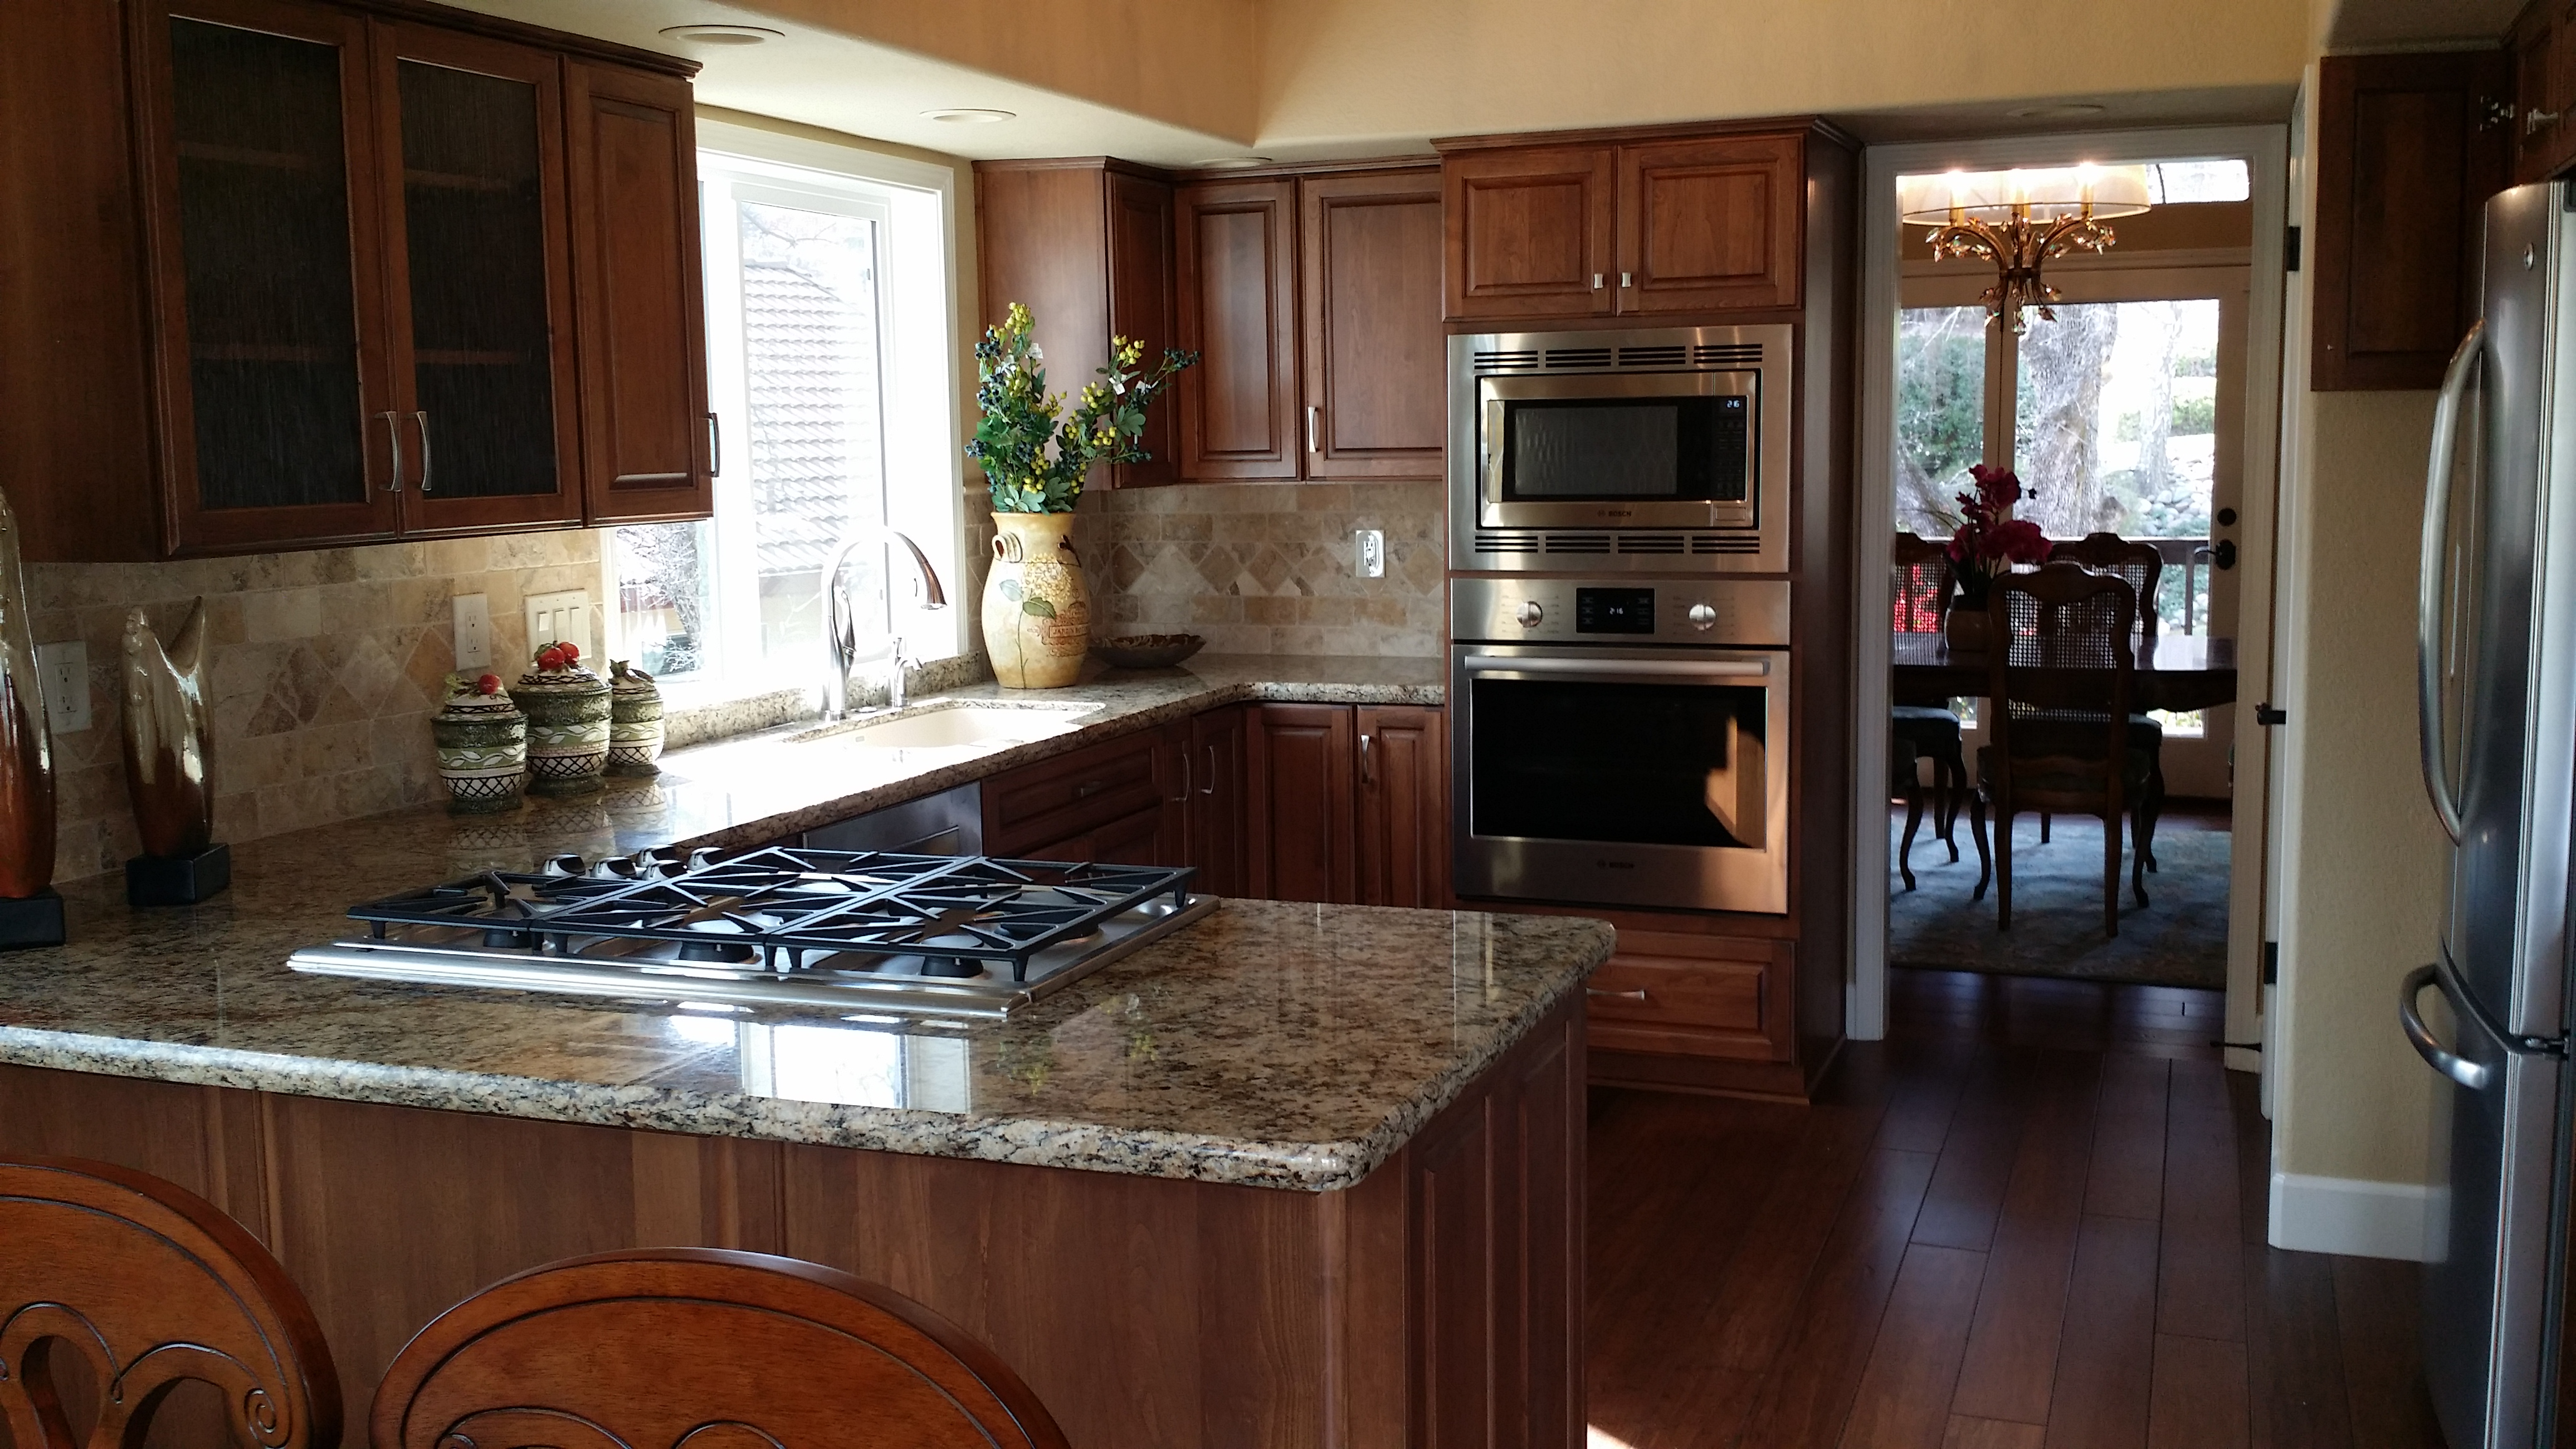 counter top range, light brown cabinets and granite counter top